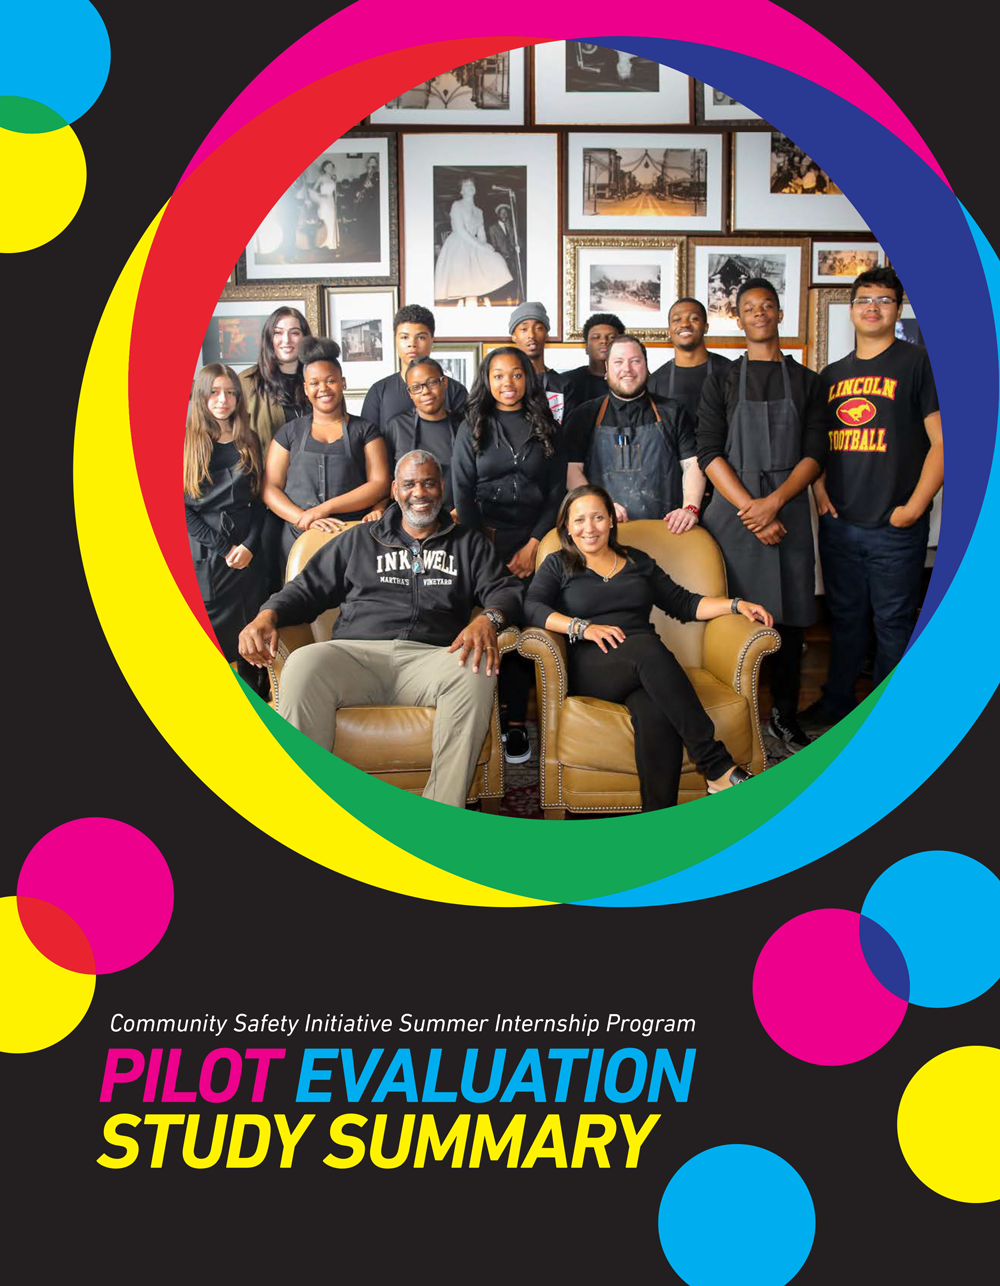 CSI Summer Internship Program - Pilot Evaluation Report